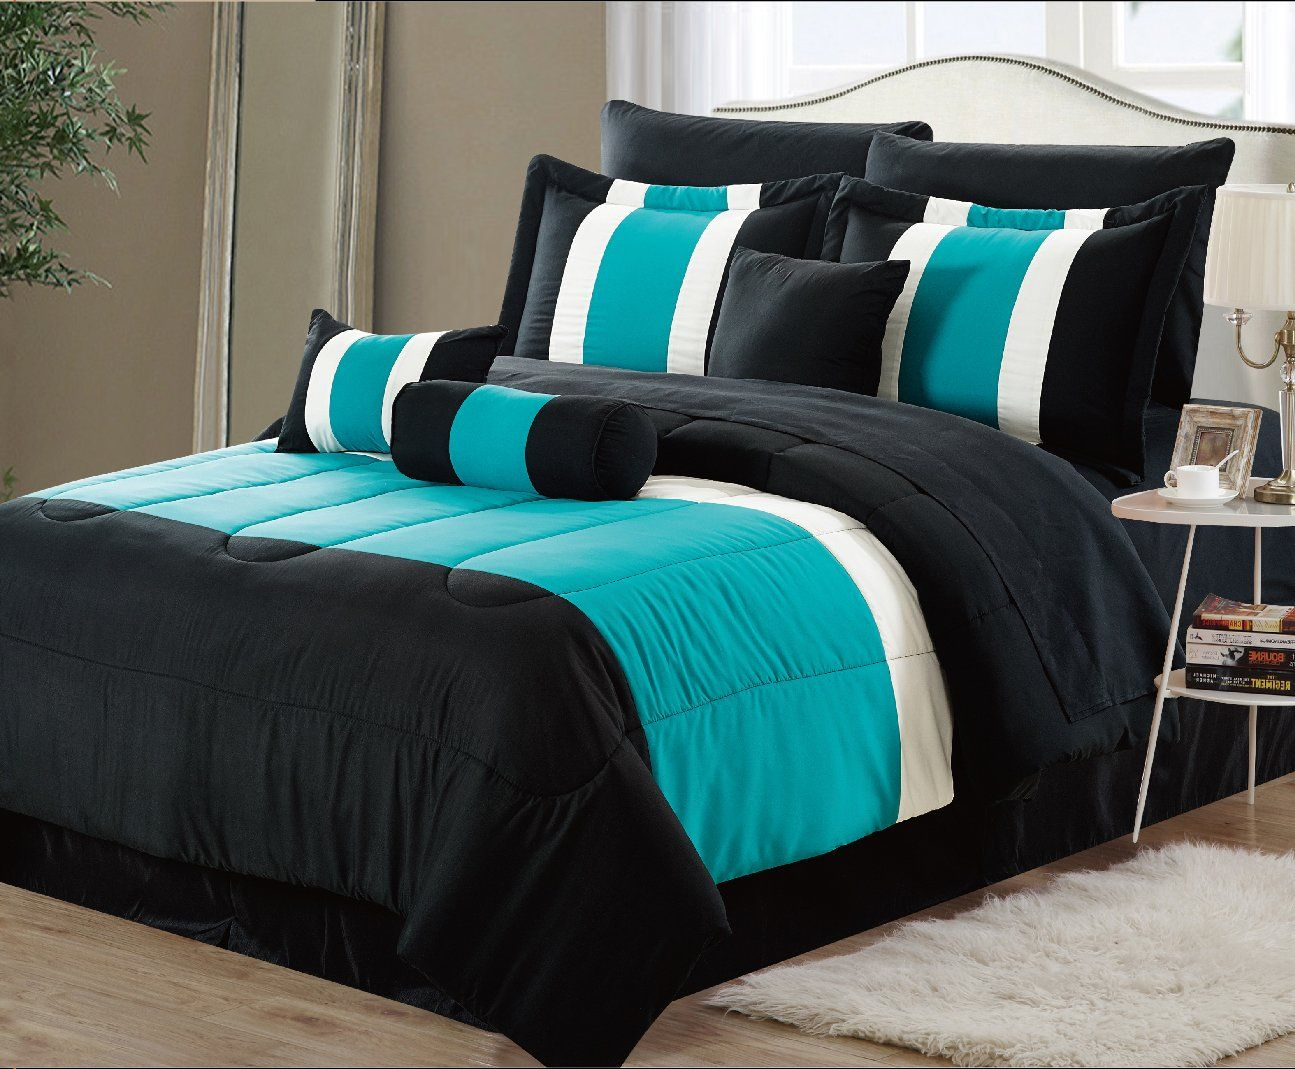 11 Piece Oversized Teal Blue And Black Comforter Set Bedding With Sheet Set California King More I Black Comforter Sets Blue Comforter Sets Comforter Sets Cheap bedding sets queen